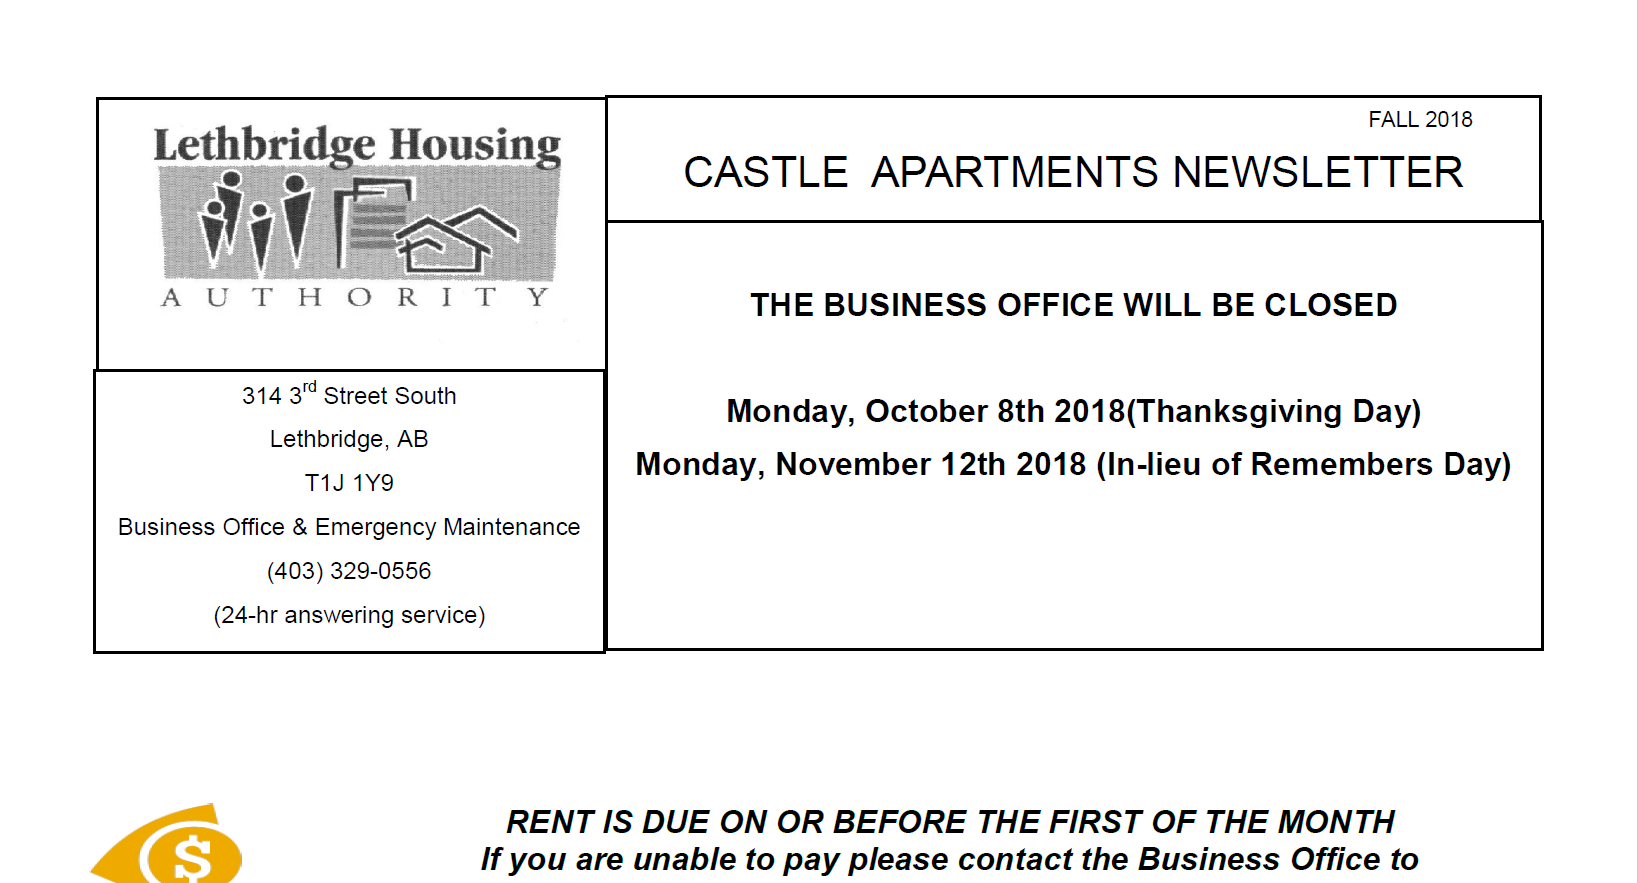 Castle Apartments Fall 2018 Newsletter